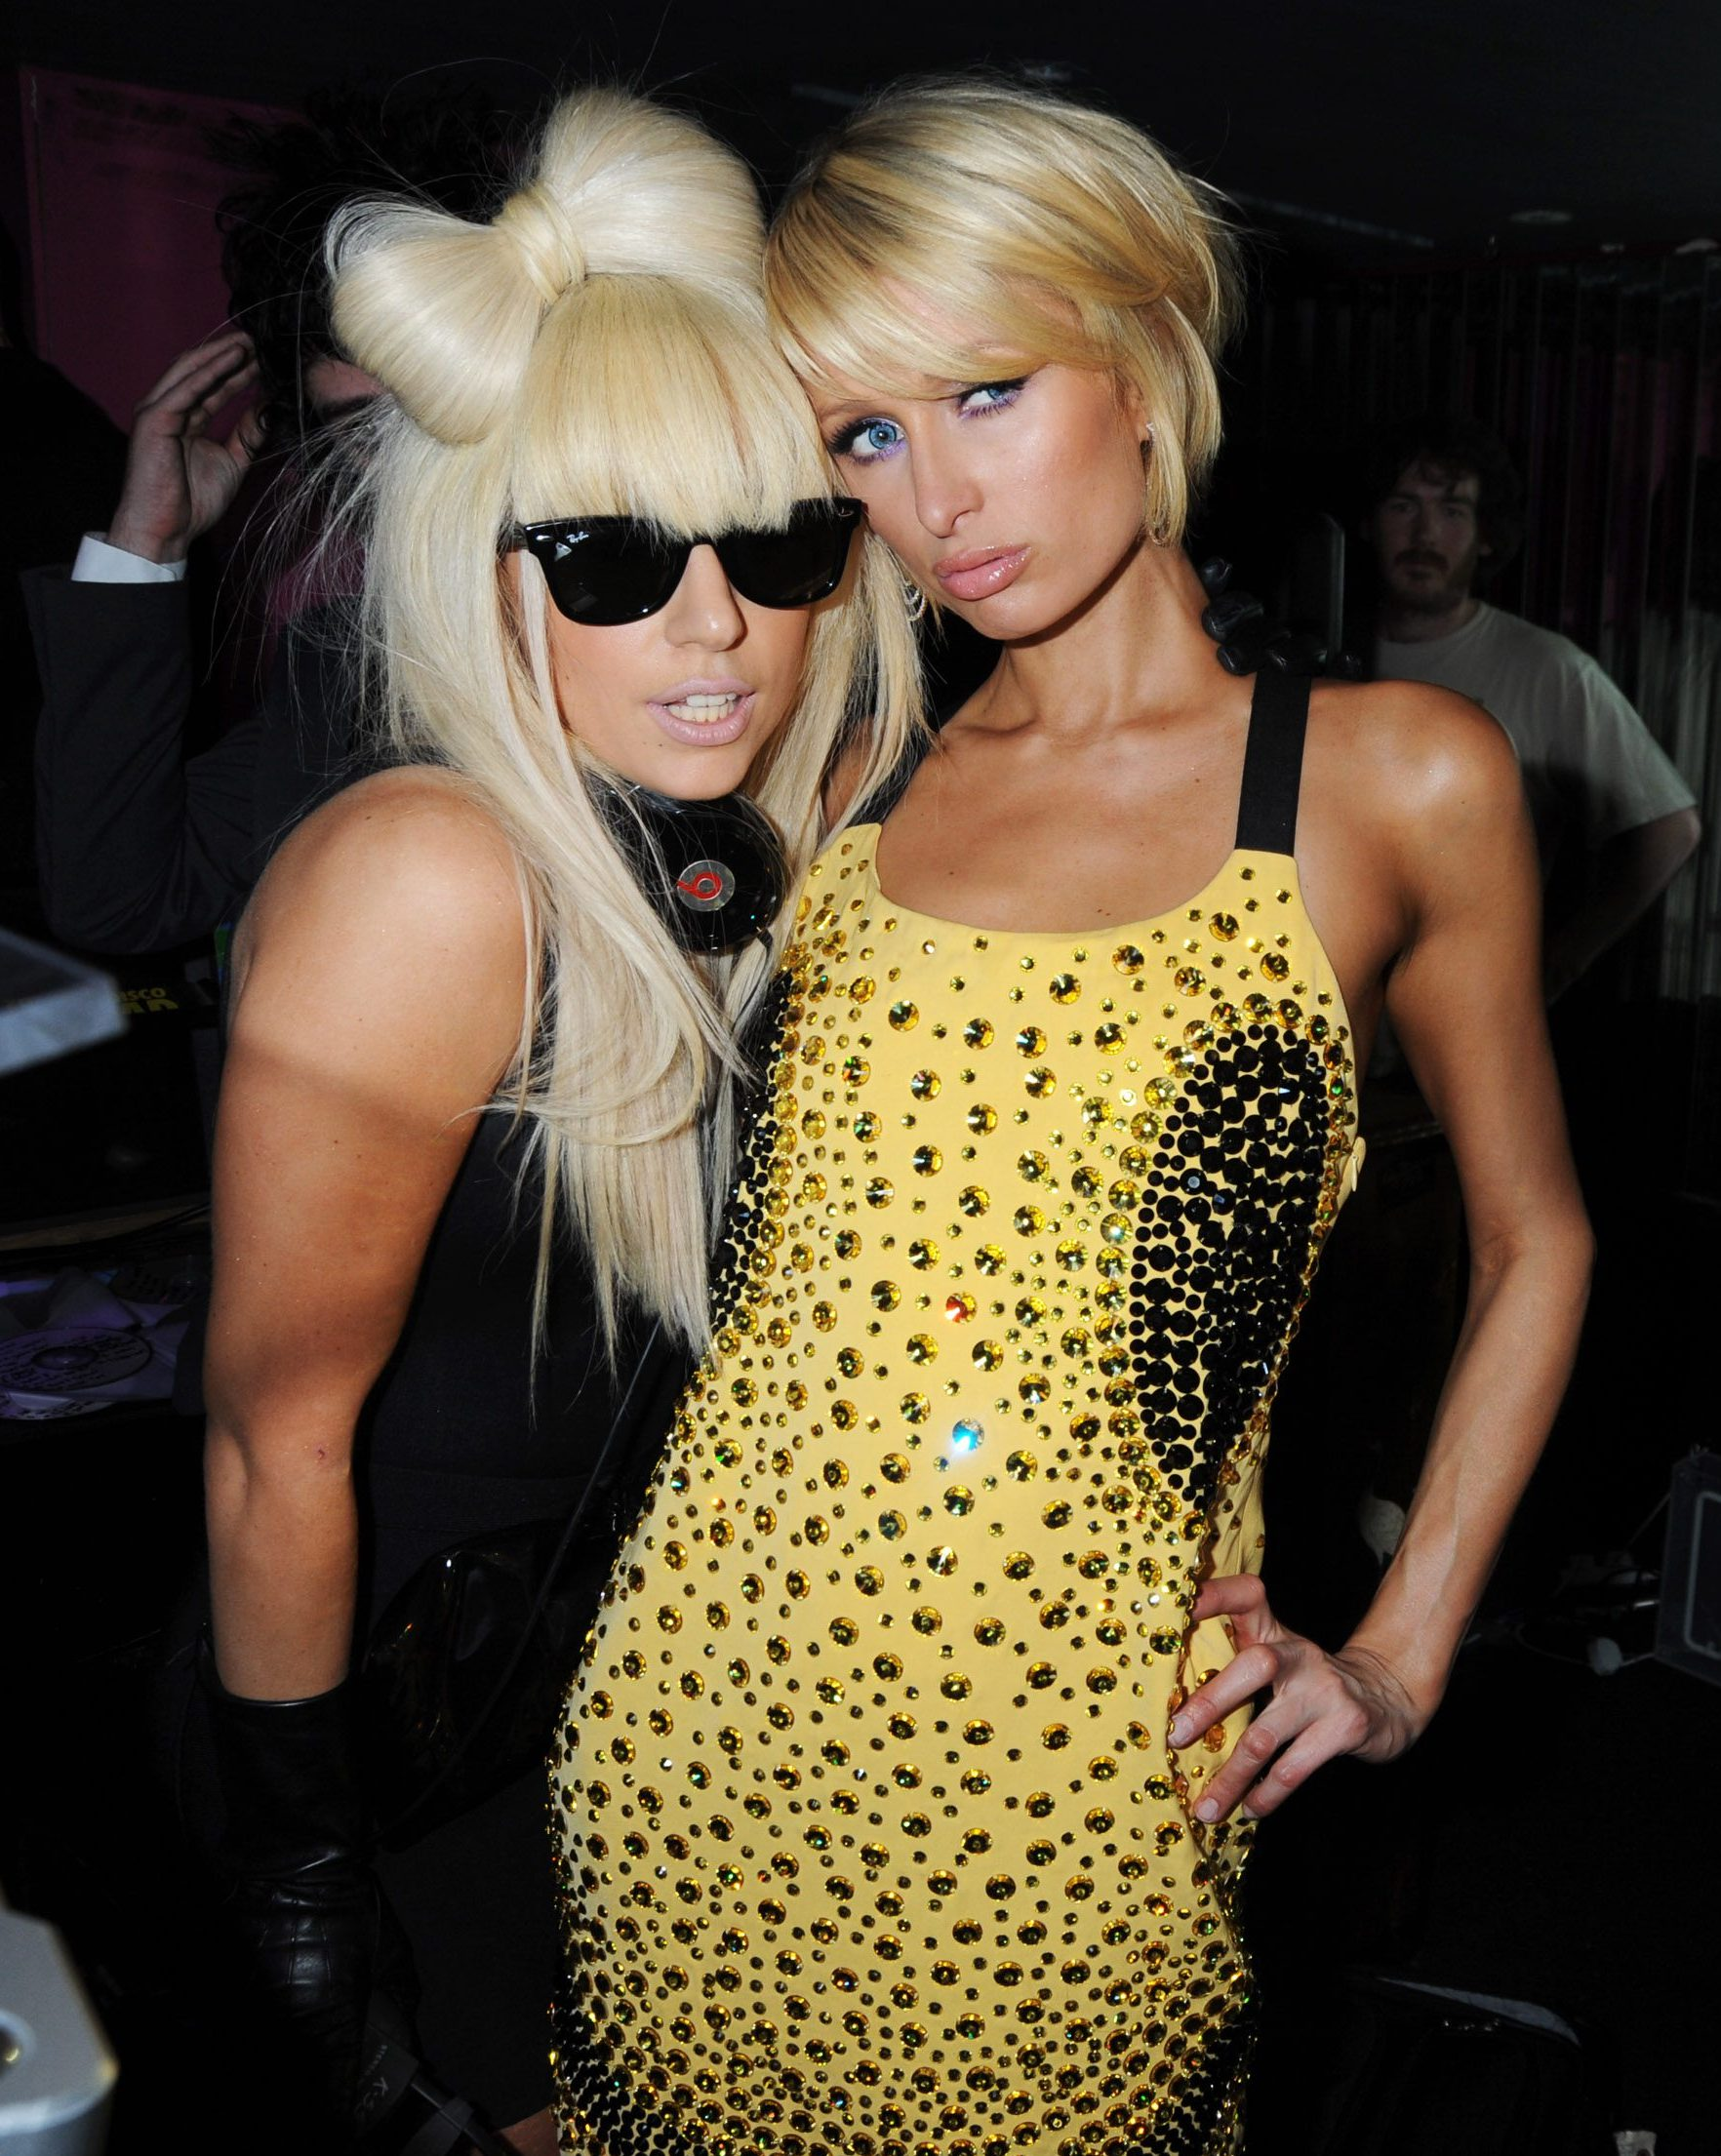 Lady Gaga and Paris Hilton Lady GaGa and Paris Hilton attend the Nokia 5800 launch party, at Punk in 2009